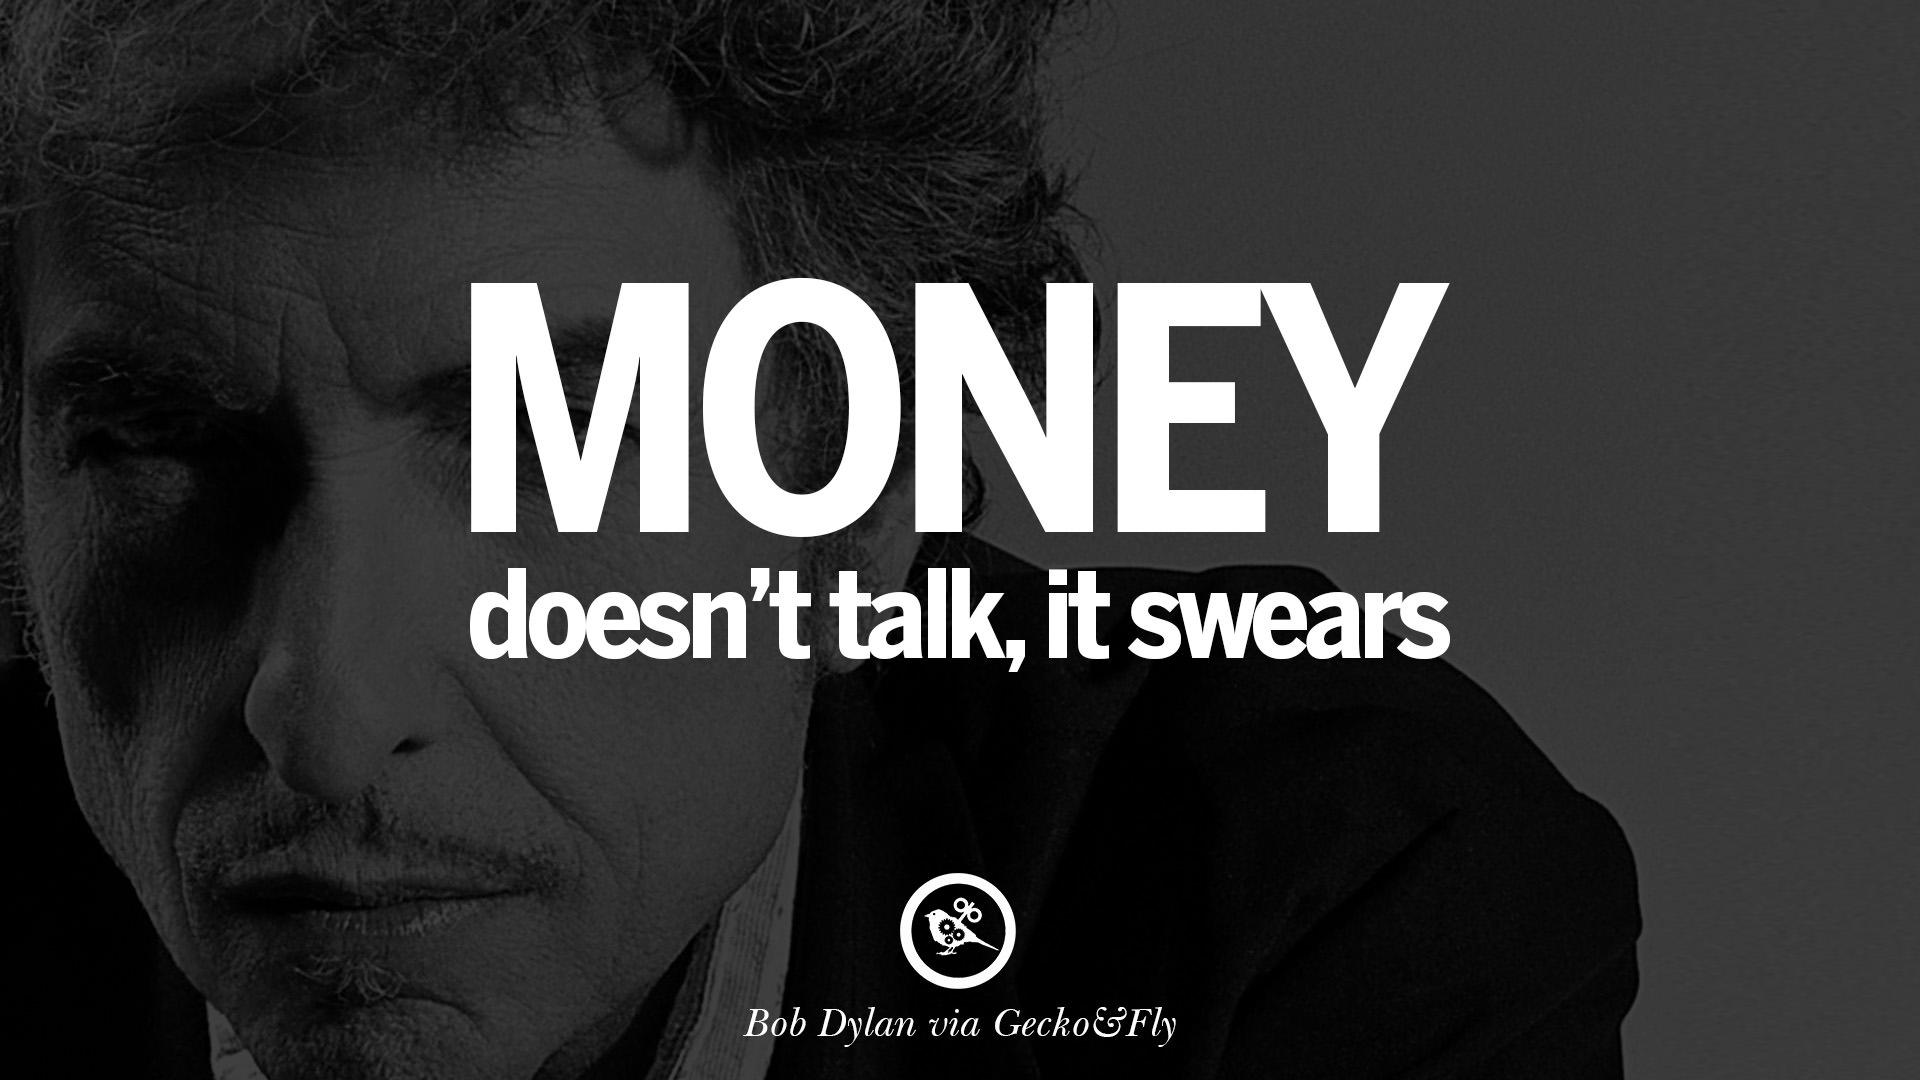 27 Inspirational Bob Dylan Quotes On Freedom Love Via His